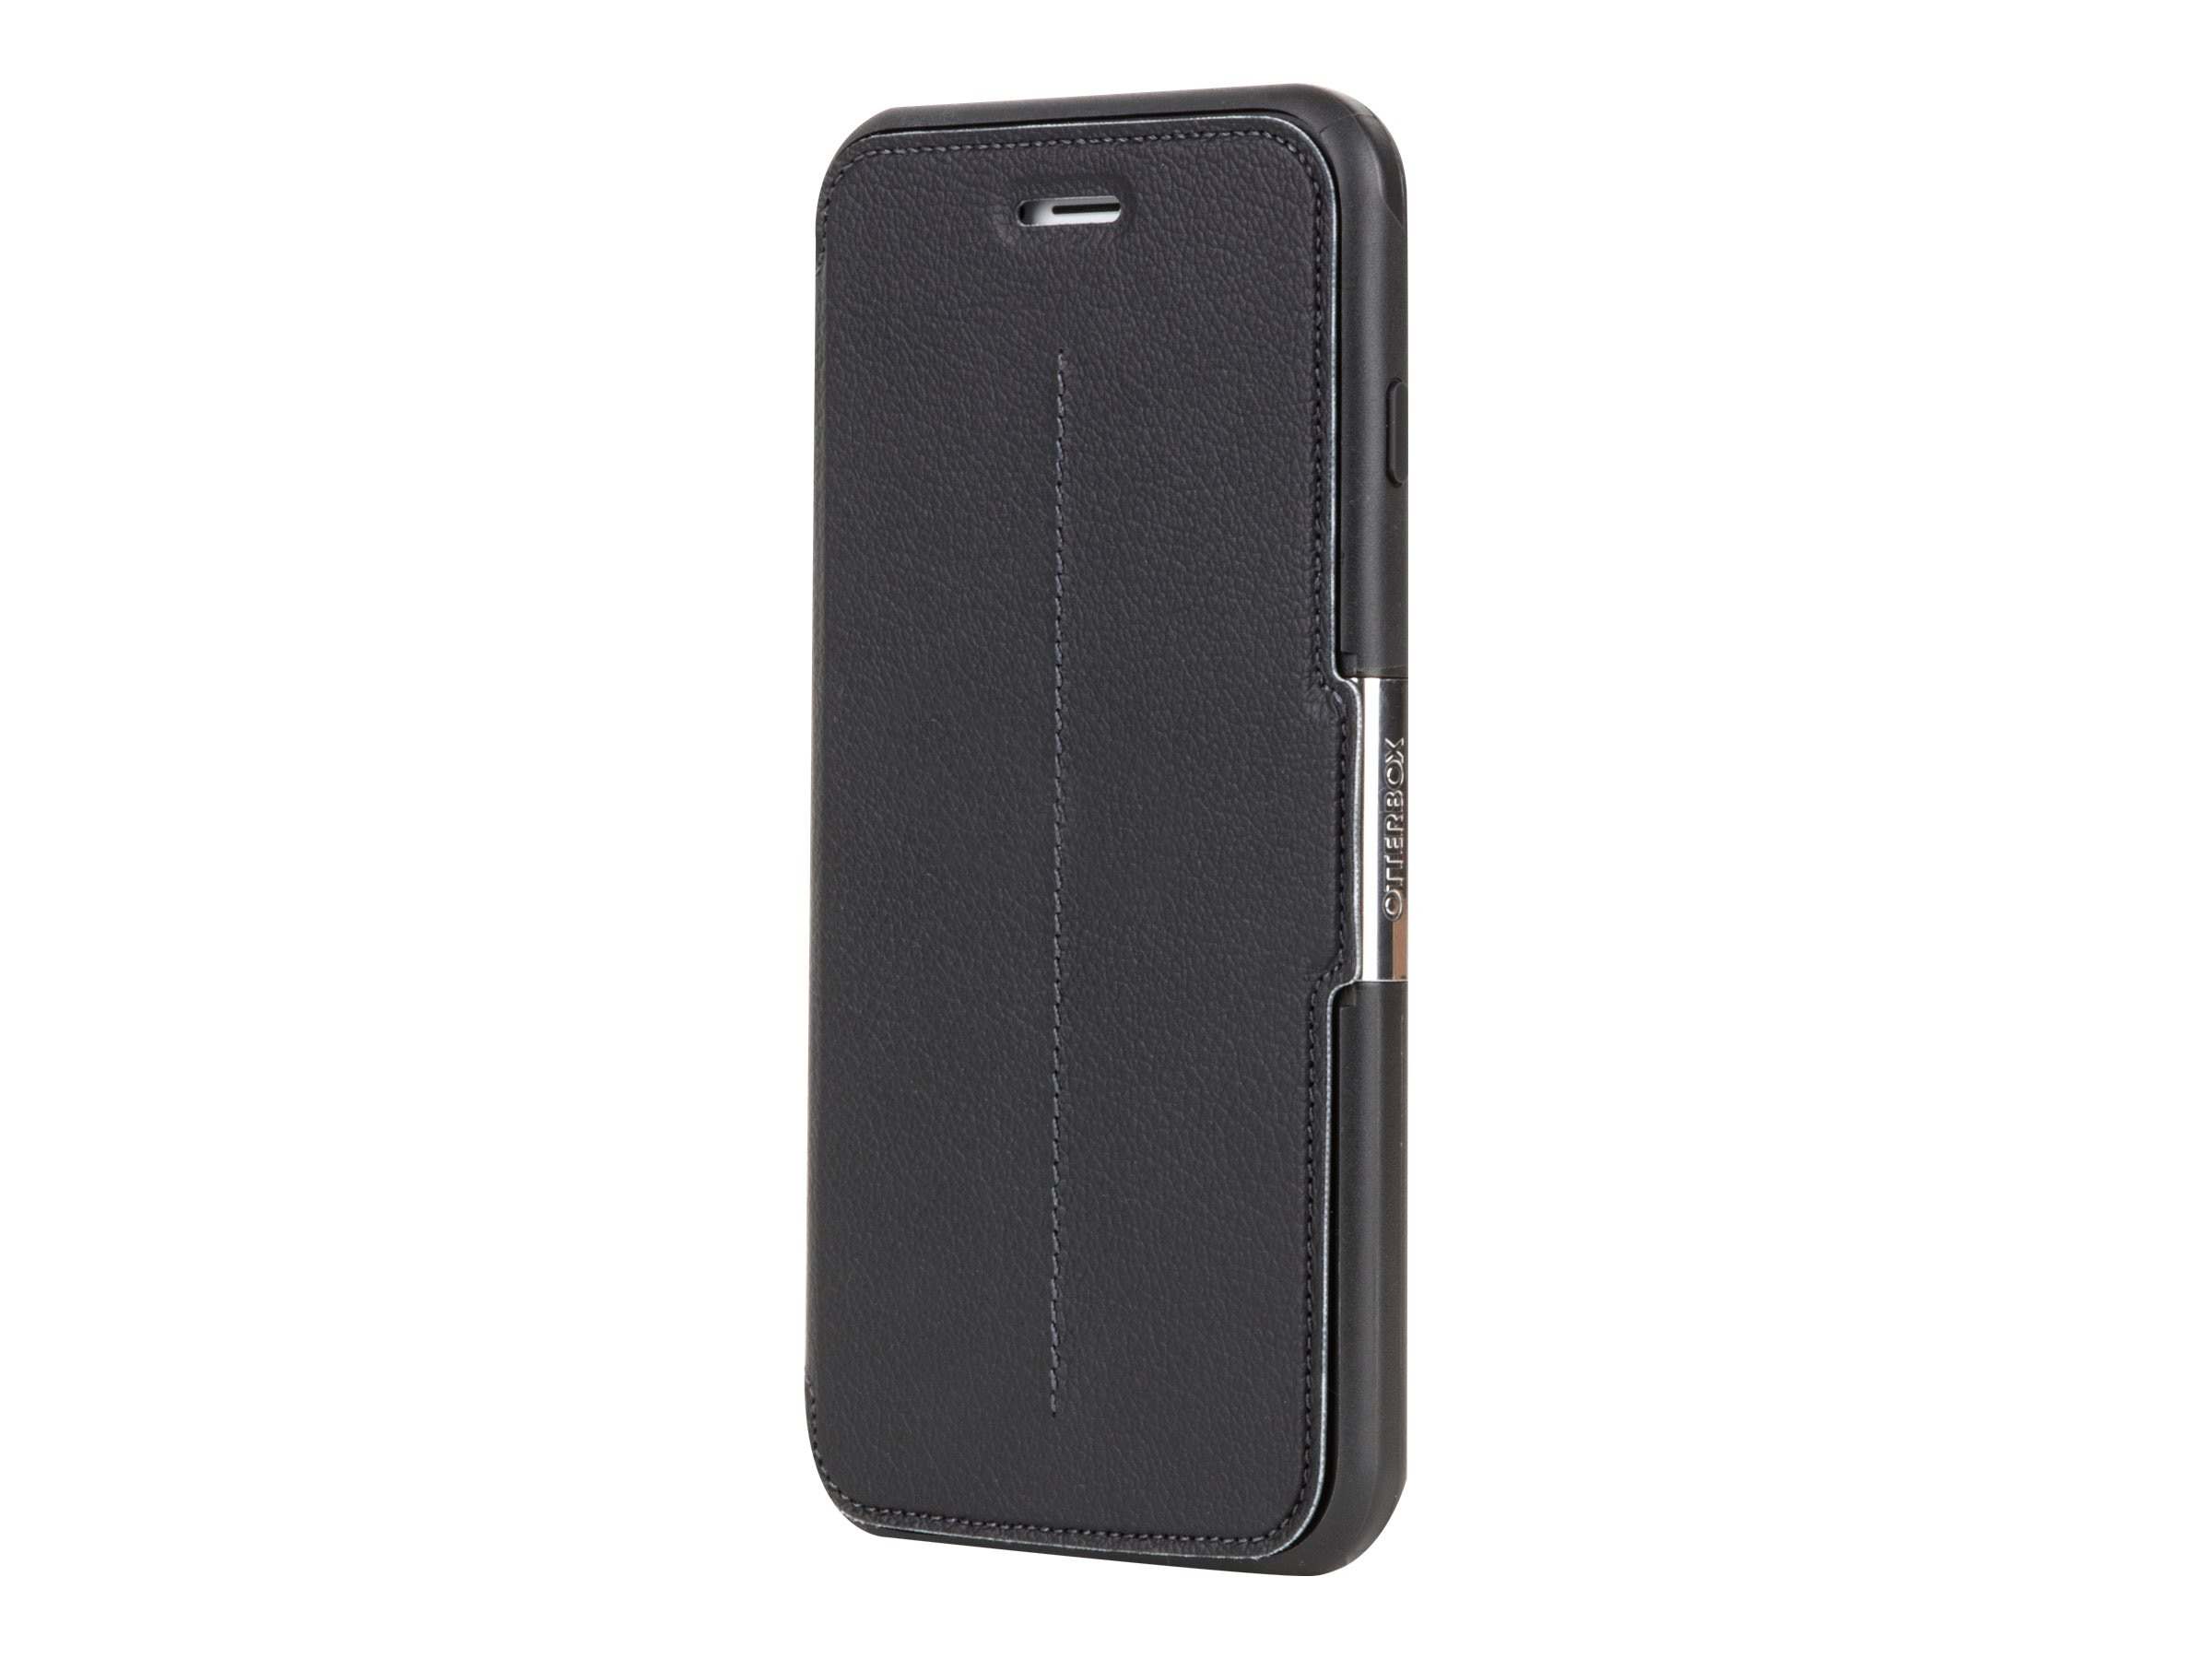 OtterBox Strada New Minimalism for iPhone 6